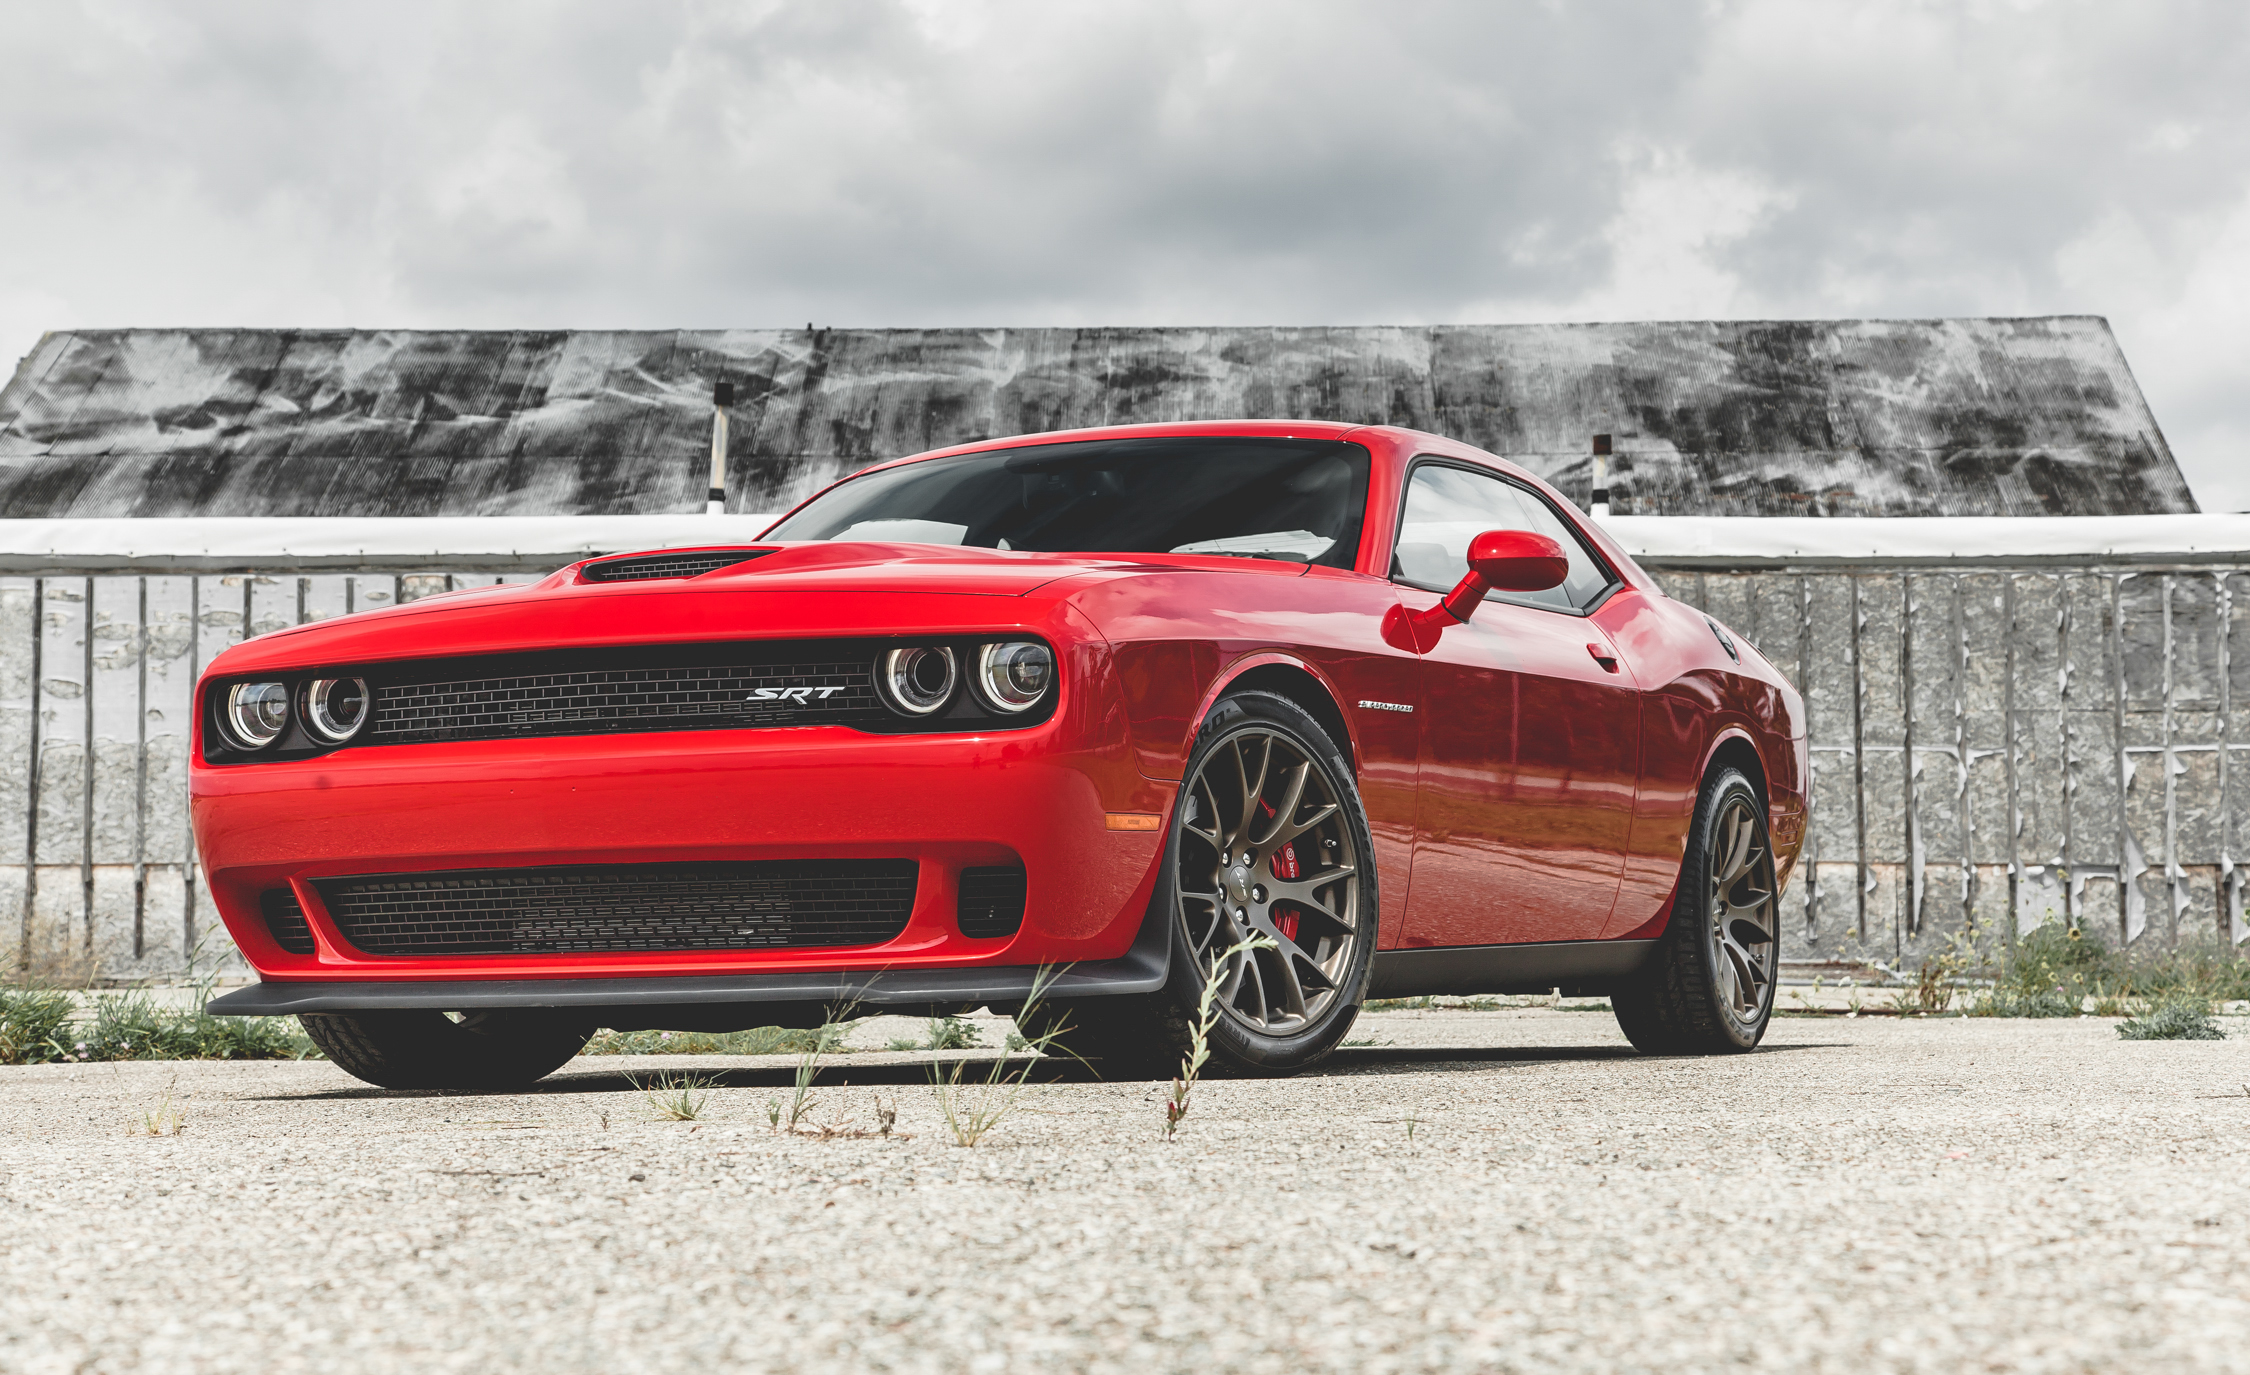 2015 Dodge Challenger SRT Hellcat Exterior Full Front and Side